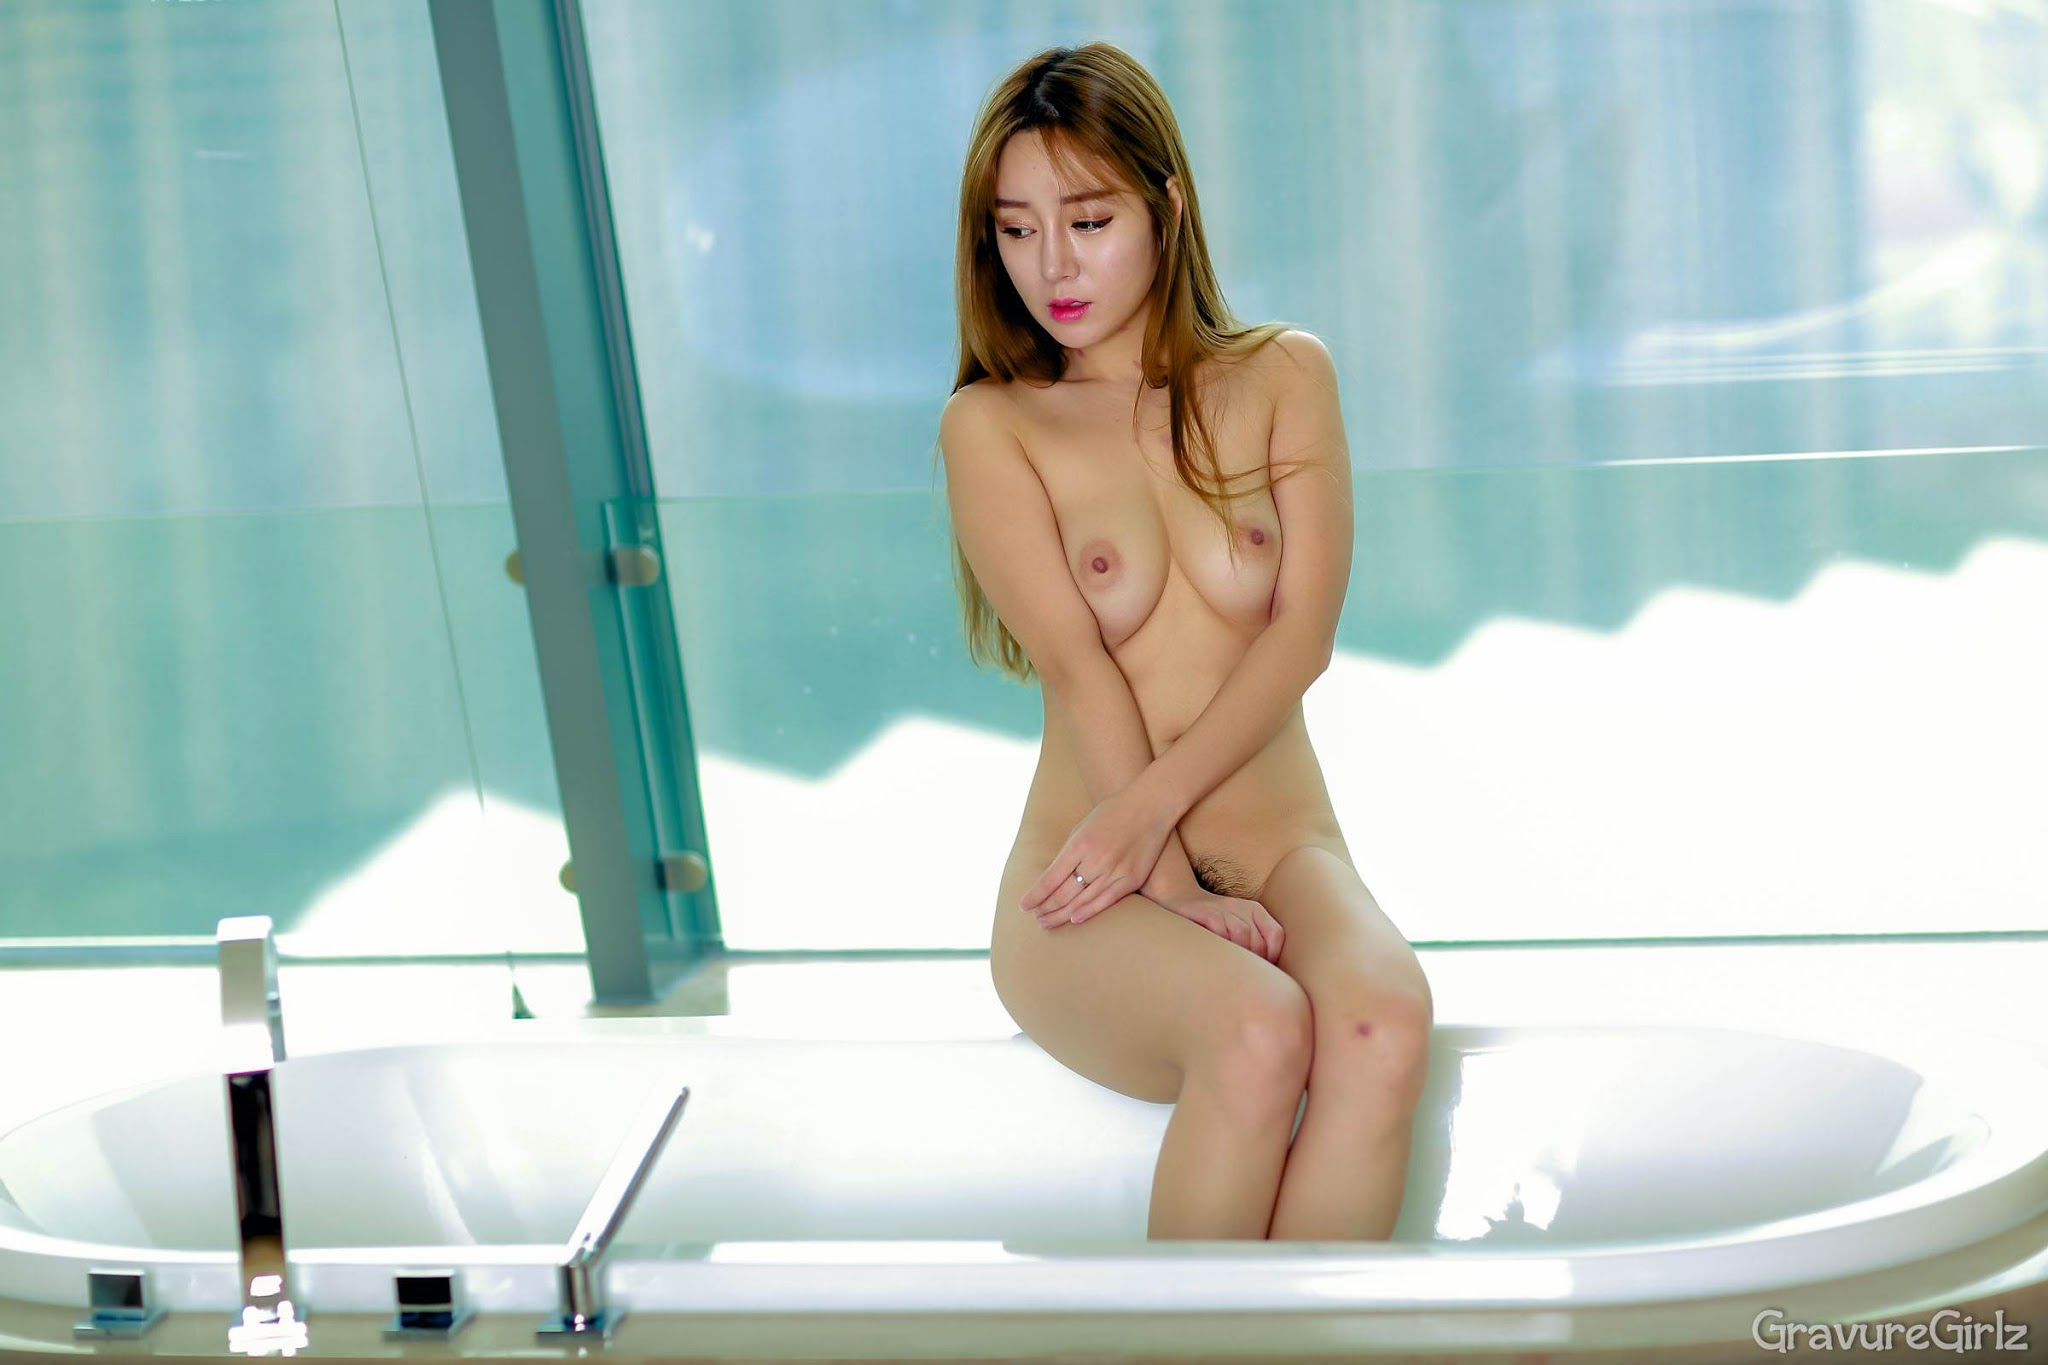 Japanese woman with hairy pubis and labia majora 5